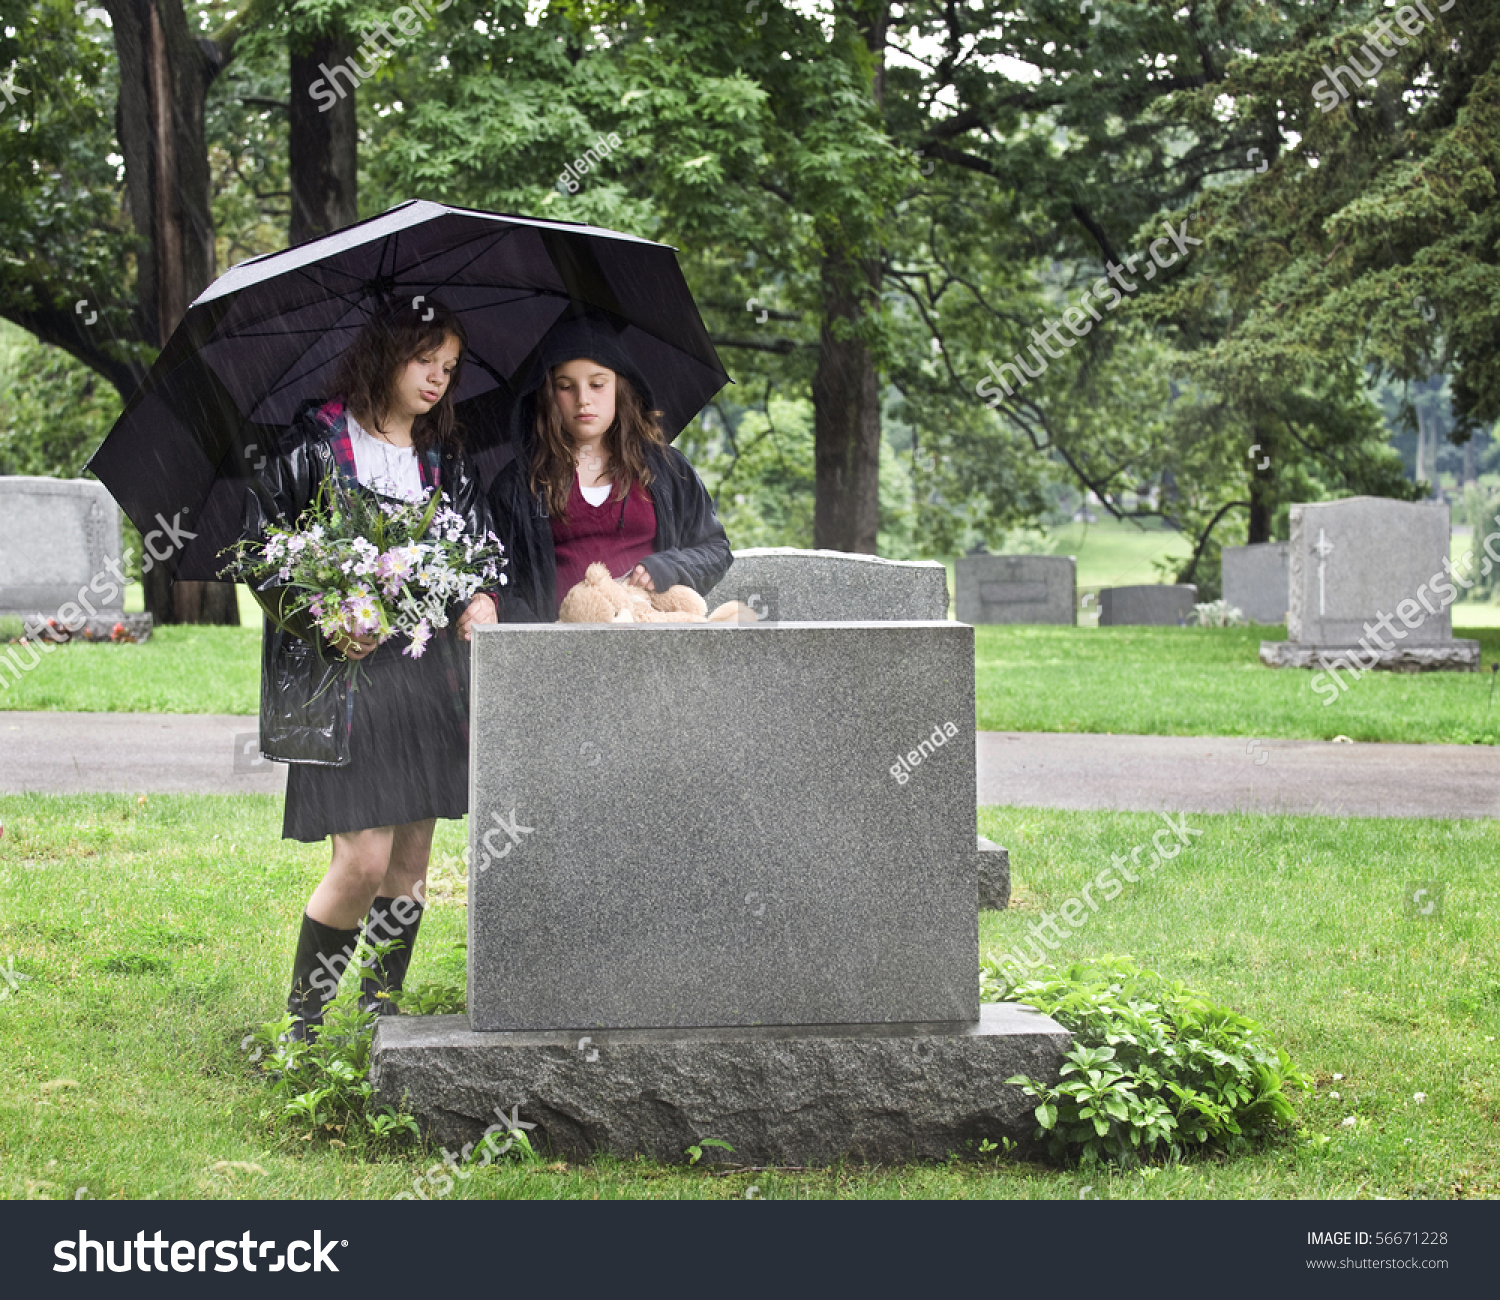 Two Young Girls Visiting Grave Site Stock Photo 56671228